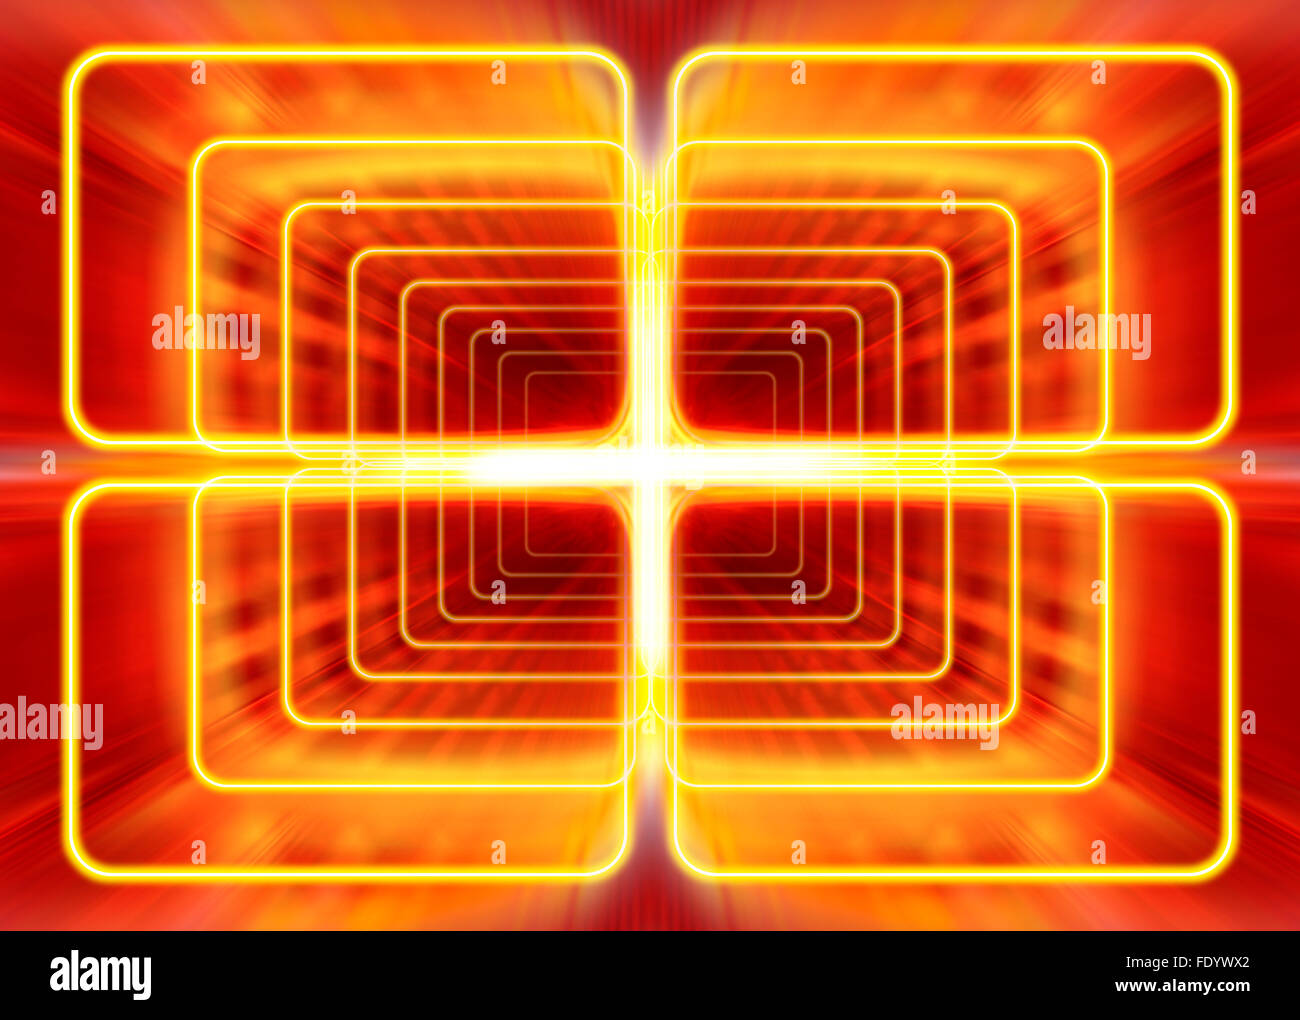 wave mode of electromagnetic radiation, abstract background - Stock Image